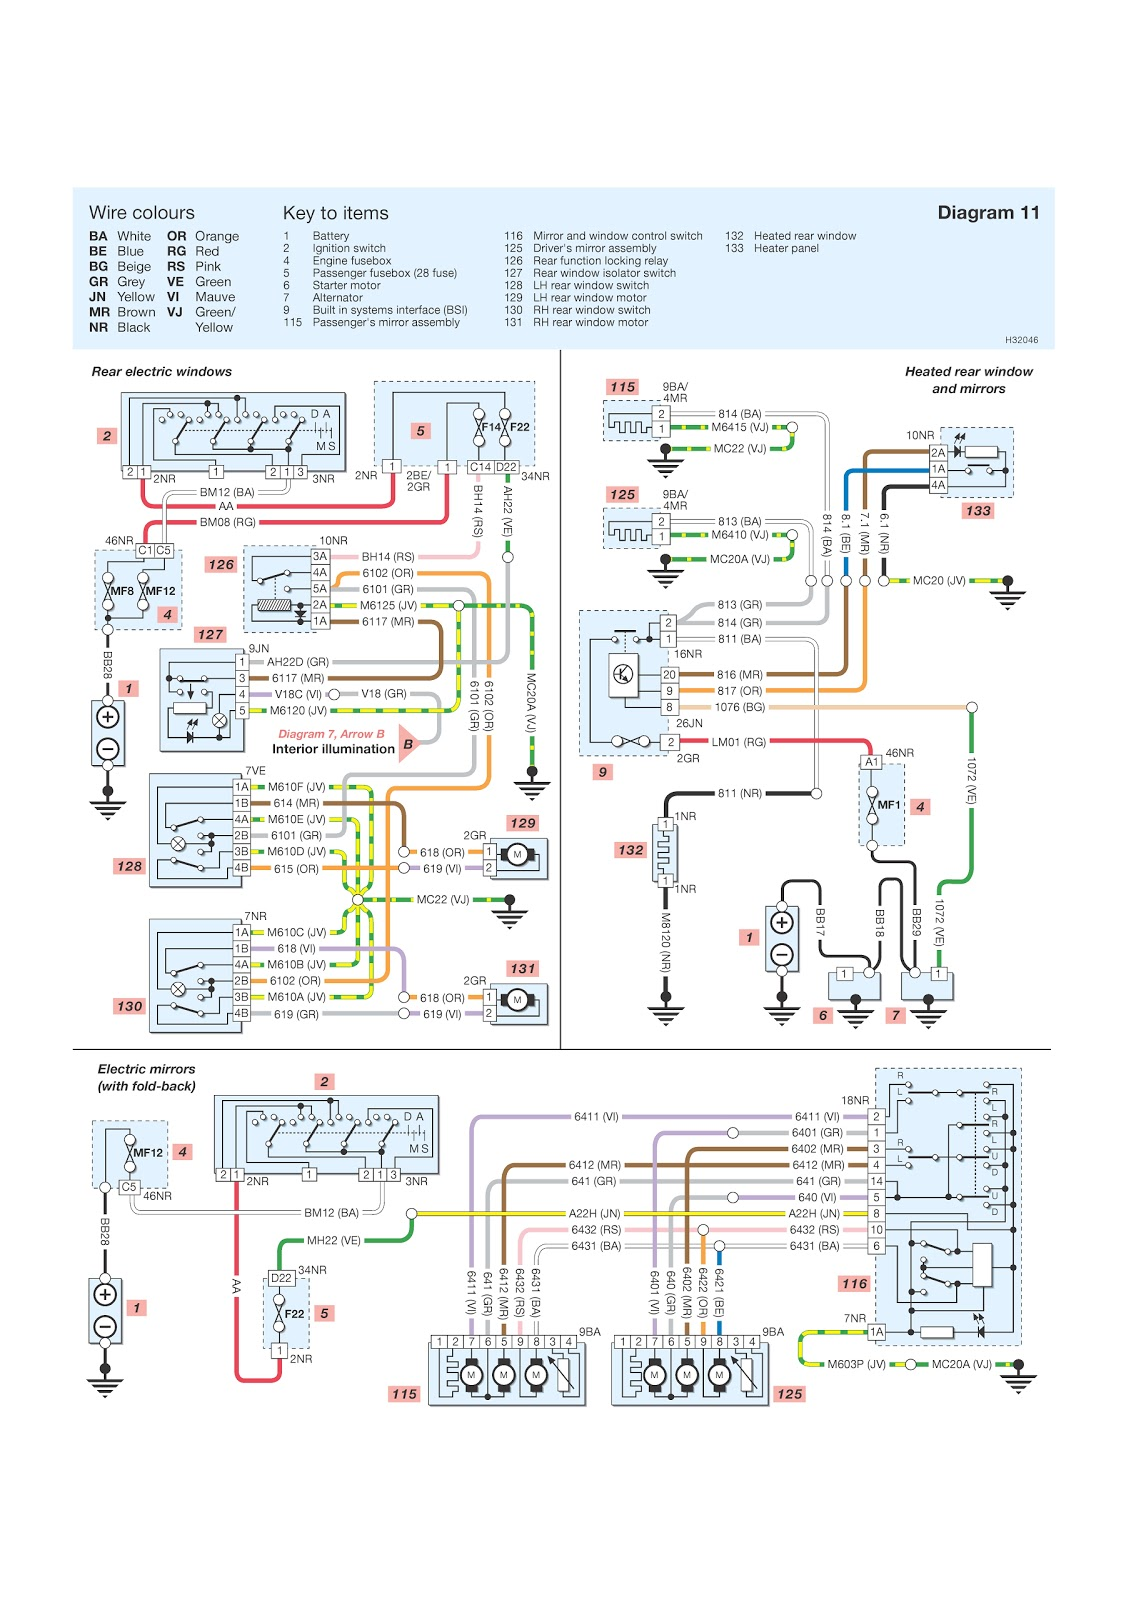 Dorable peugeot 307 wiring diagram pictures best images for wiring fantastic citroen xsara picasso wiring diagram picture collection asfbconference2016 Gallery